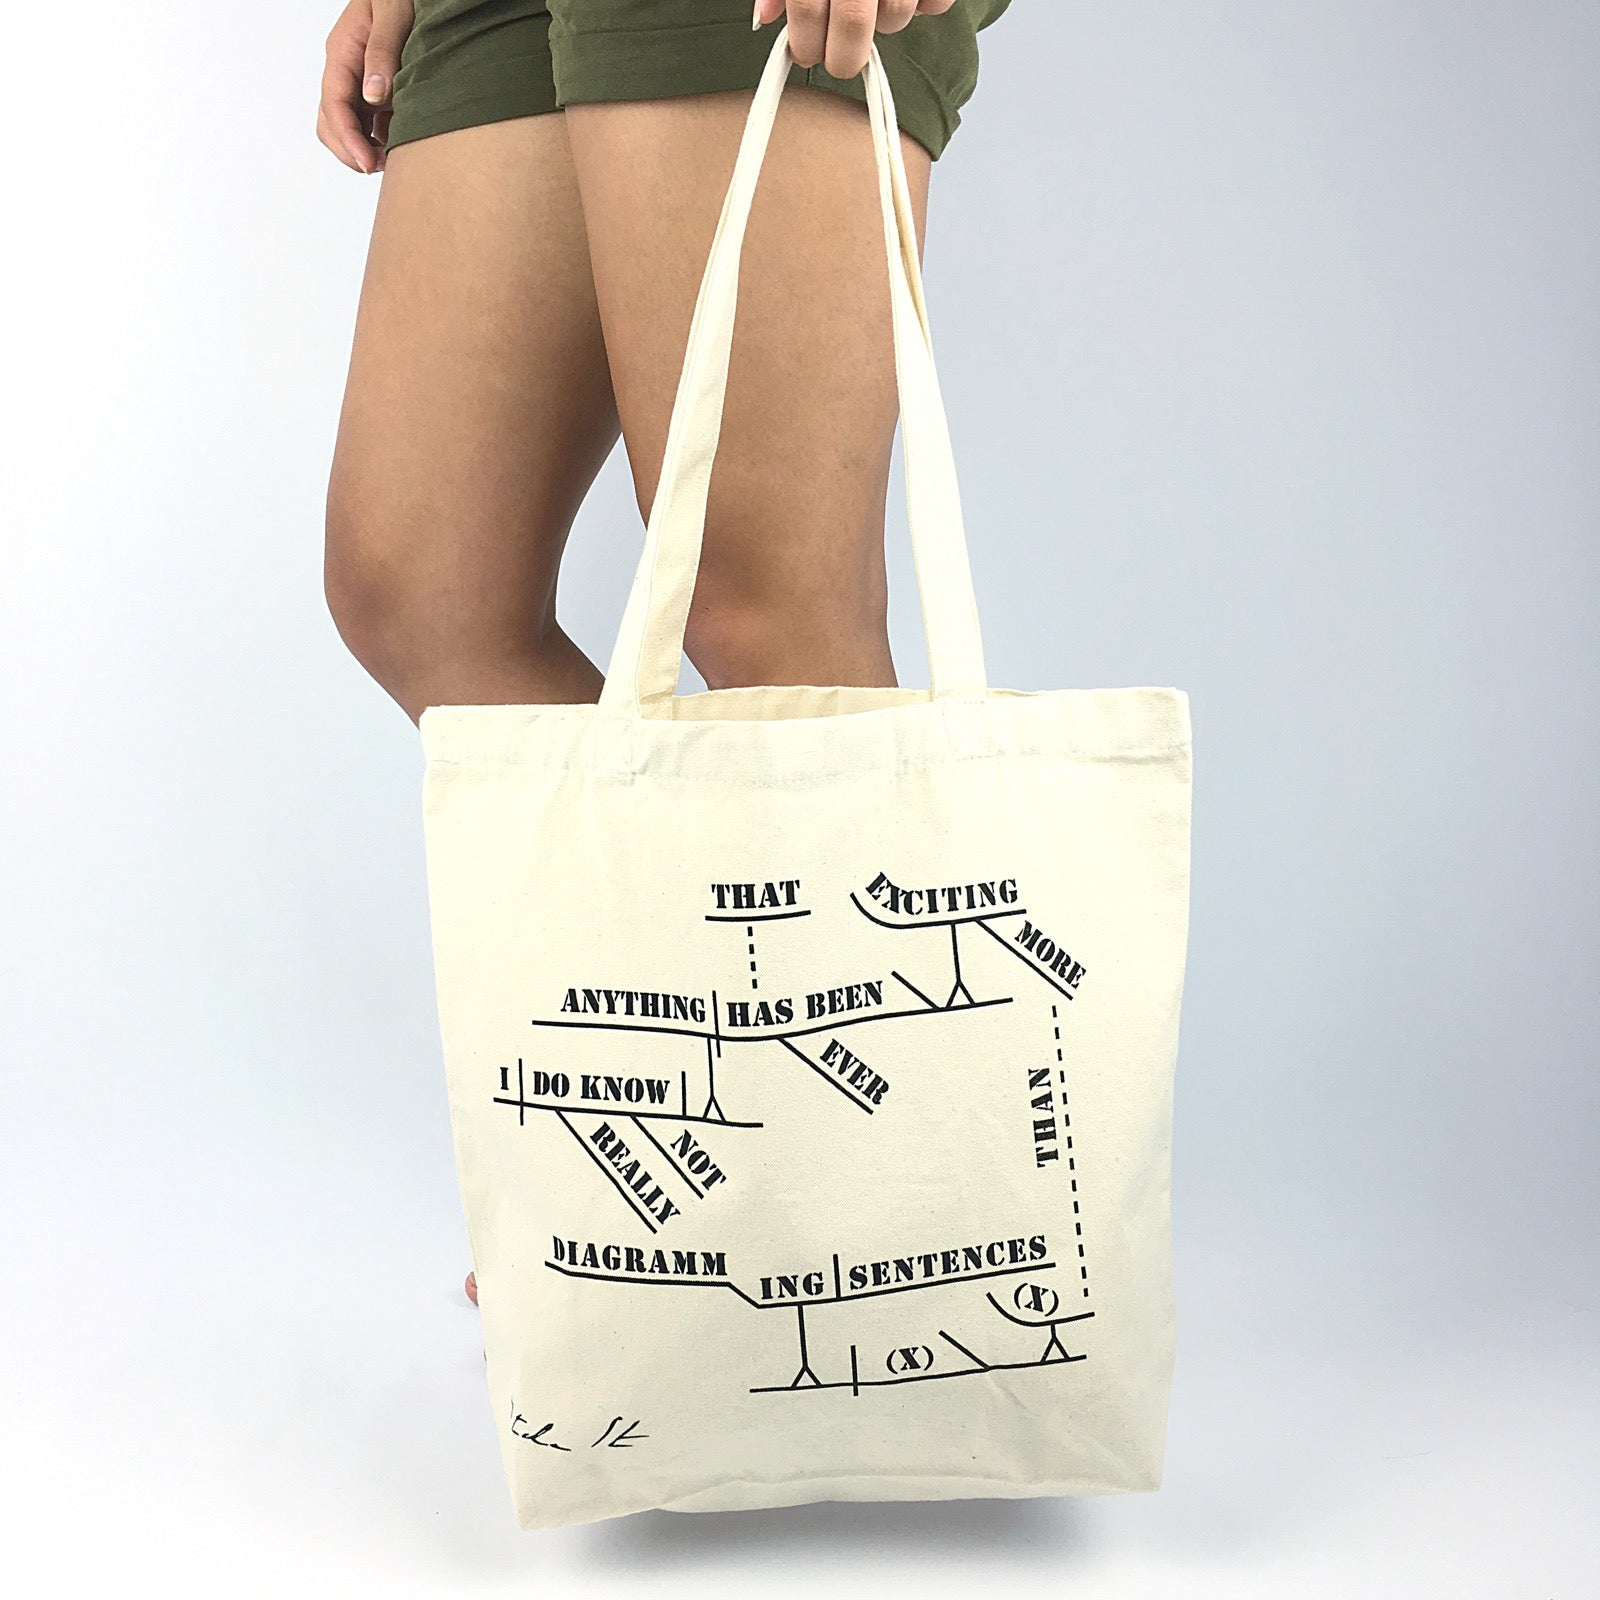 Diagrammers anonymous sentence diagram simple cotton canvas tote w image of sentence diagram simple cotton canvas tote w gertrude stein quote ccuart Images